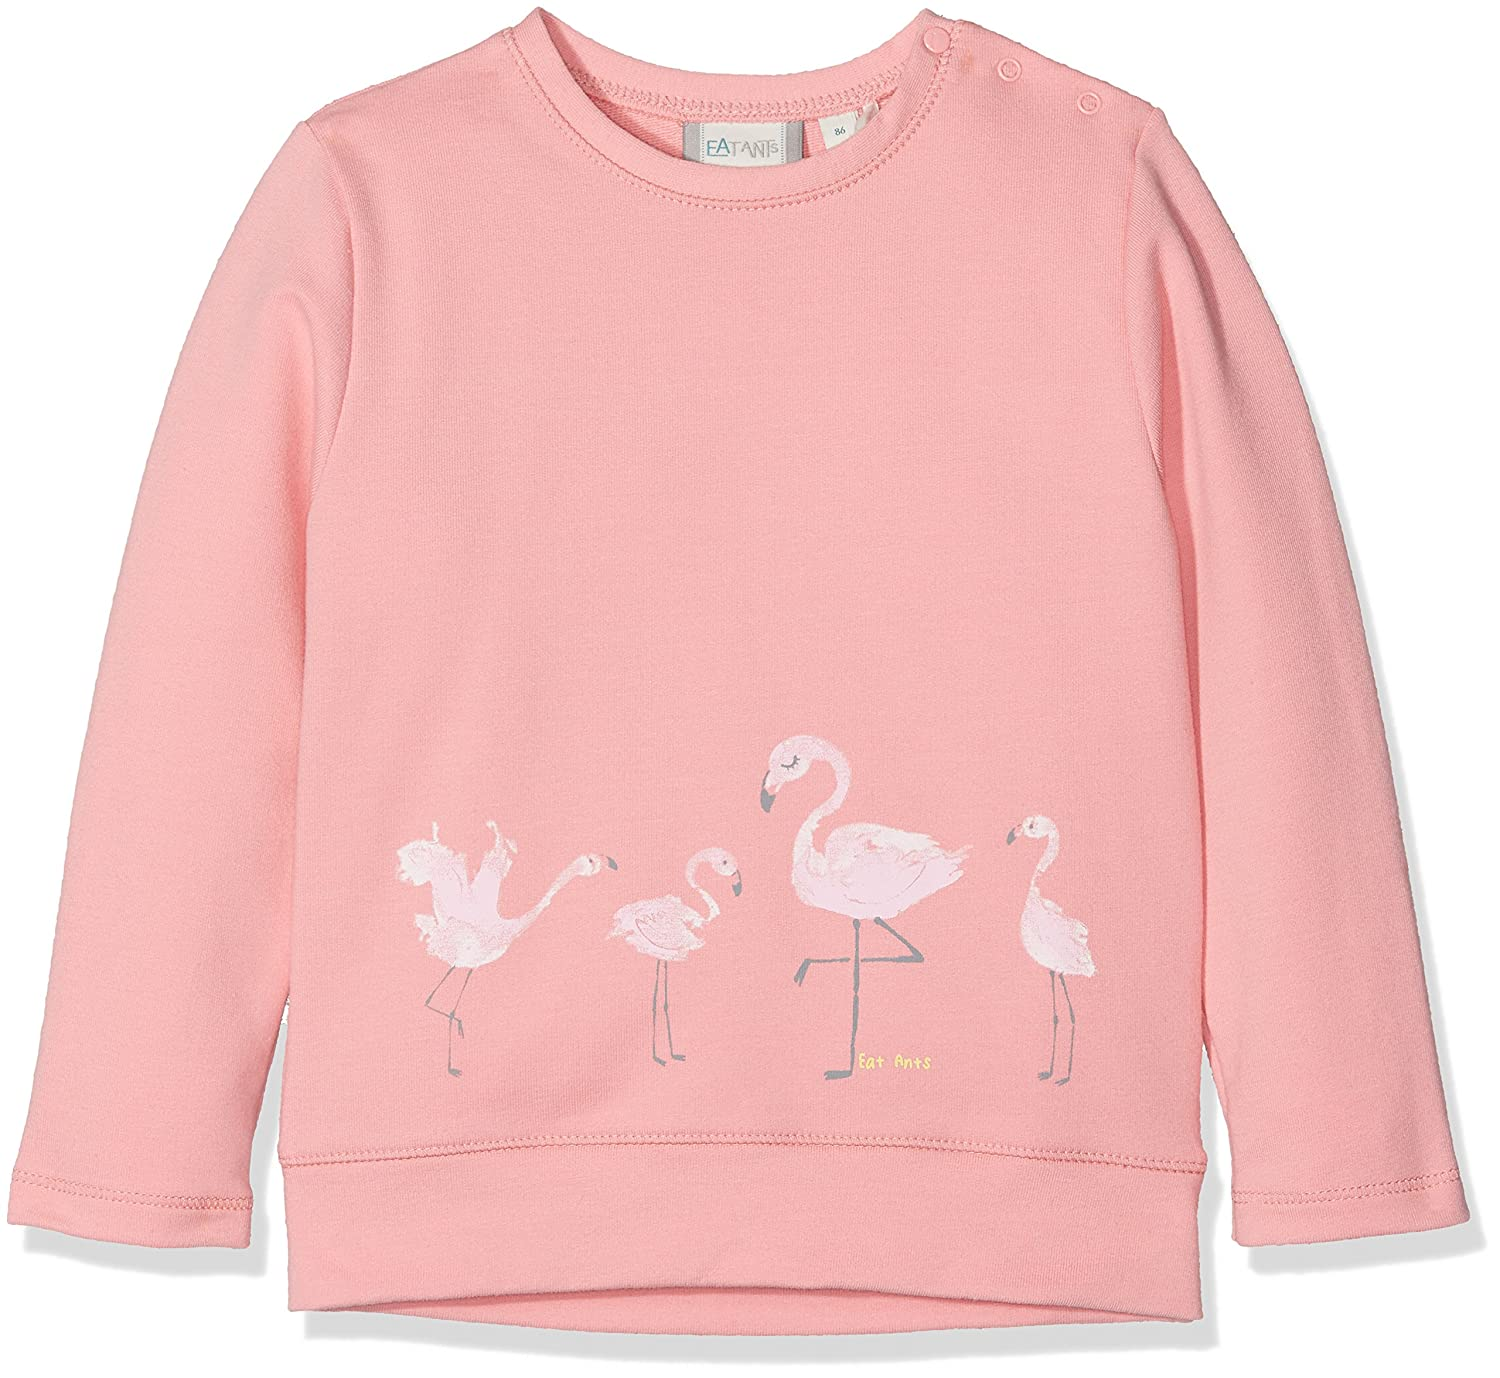 Sanetta Baby Girls' Sweatshirt 114260